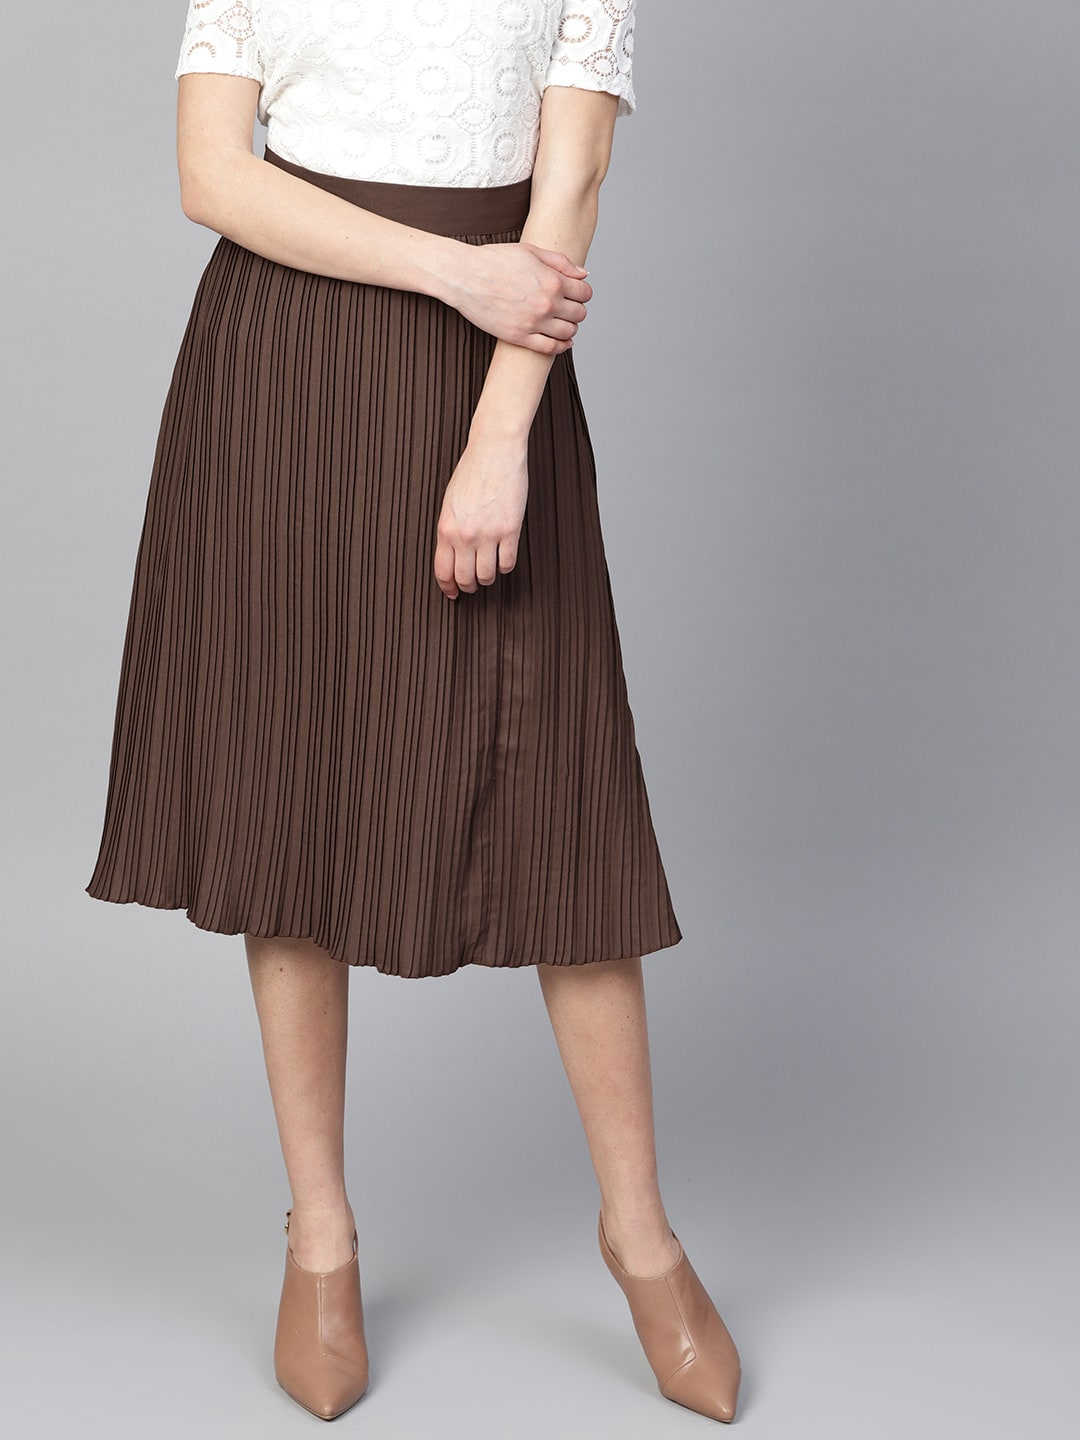 c23dab86c2 Women Pleated Skirts - Buy Women Pleated Skirts online in India